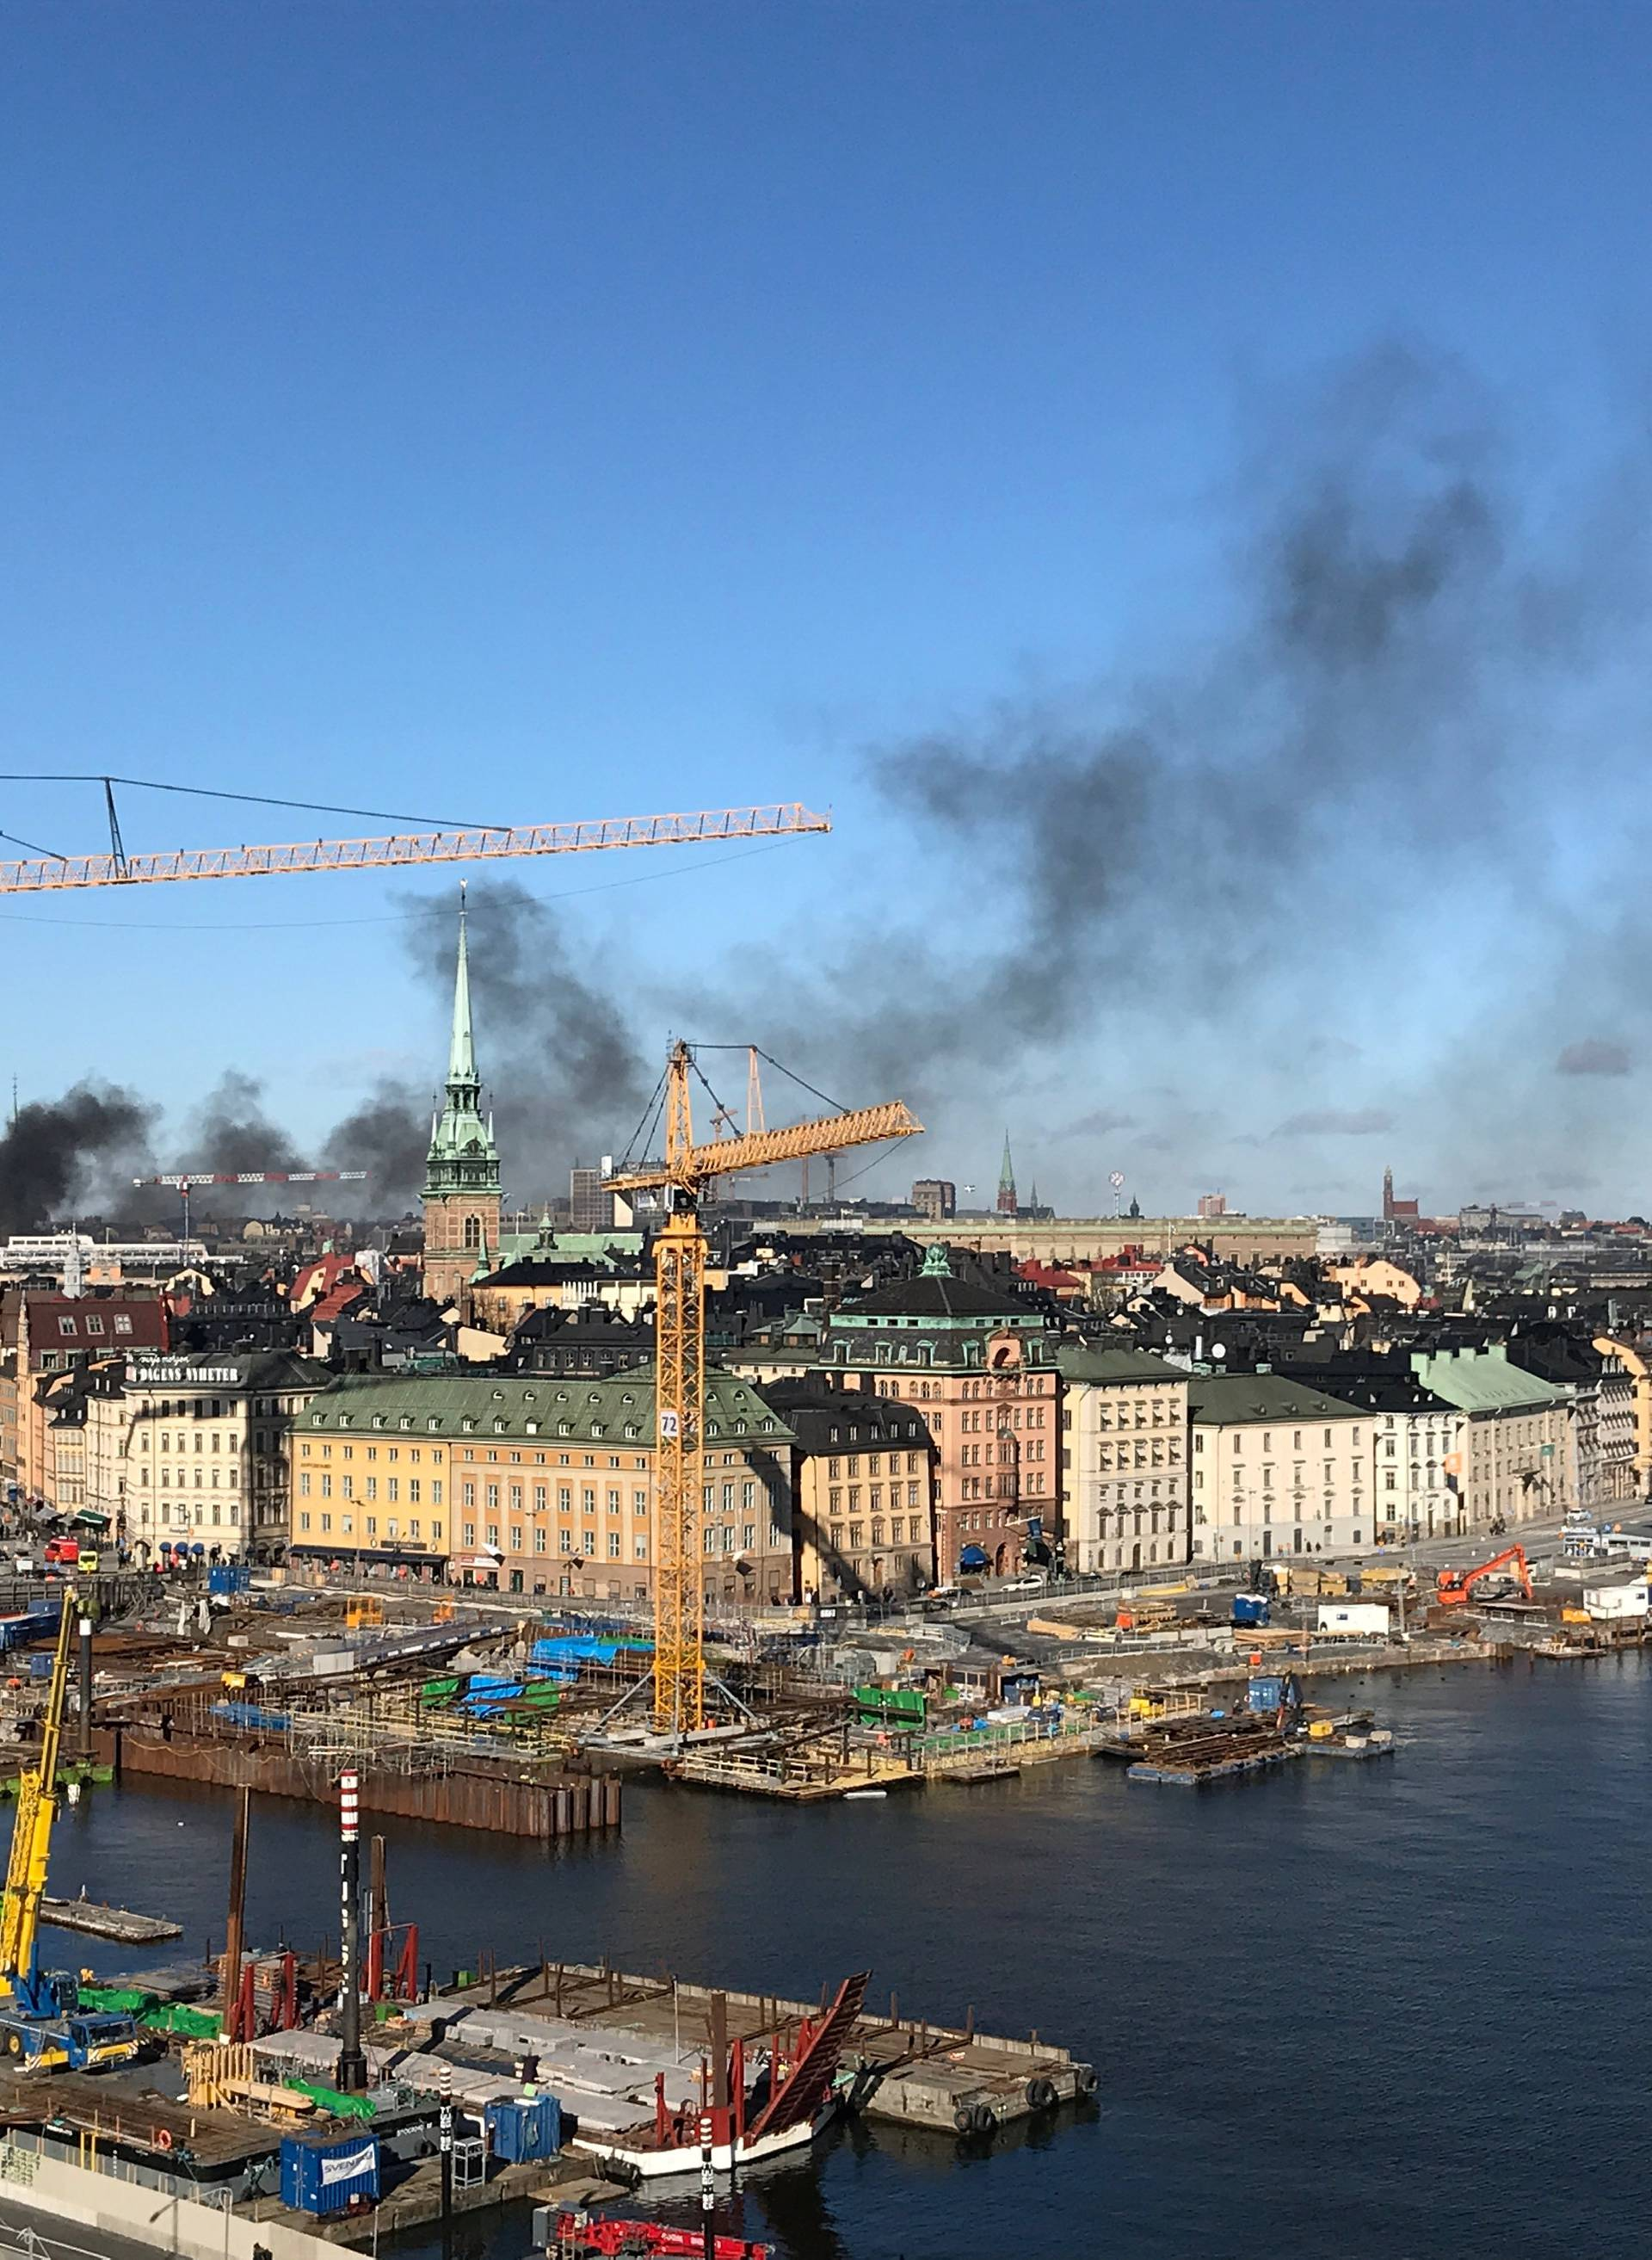 Smoke from a bus explosion and fire is seen in Tegelbacken in central Stockholm